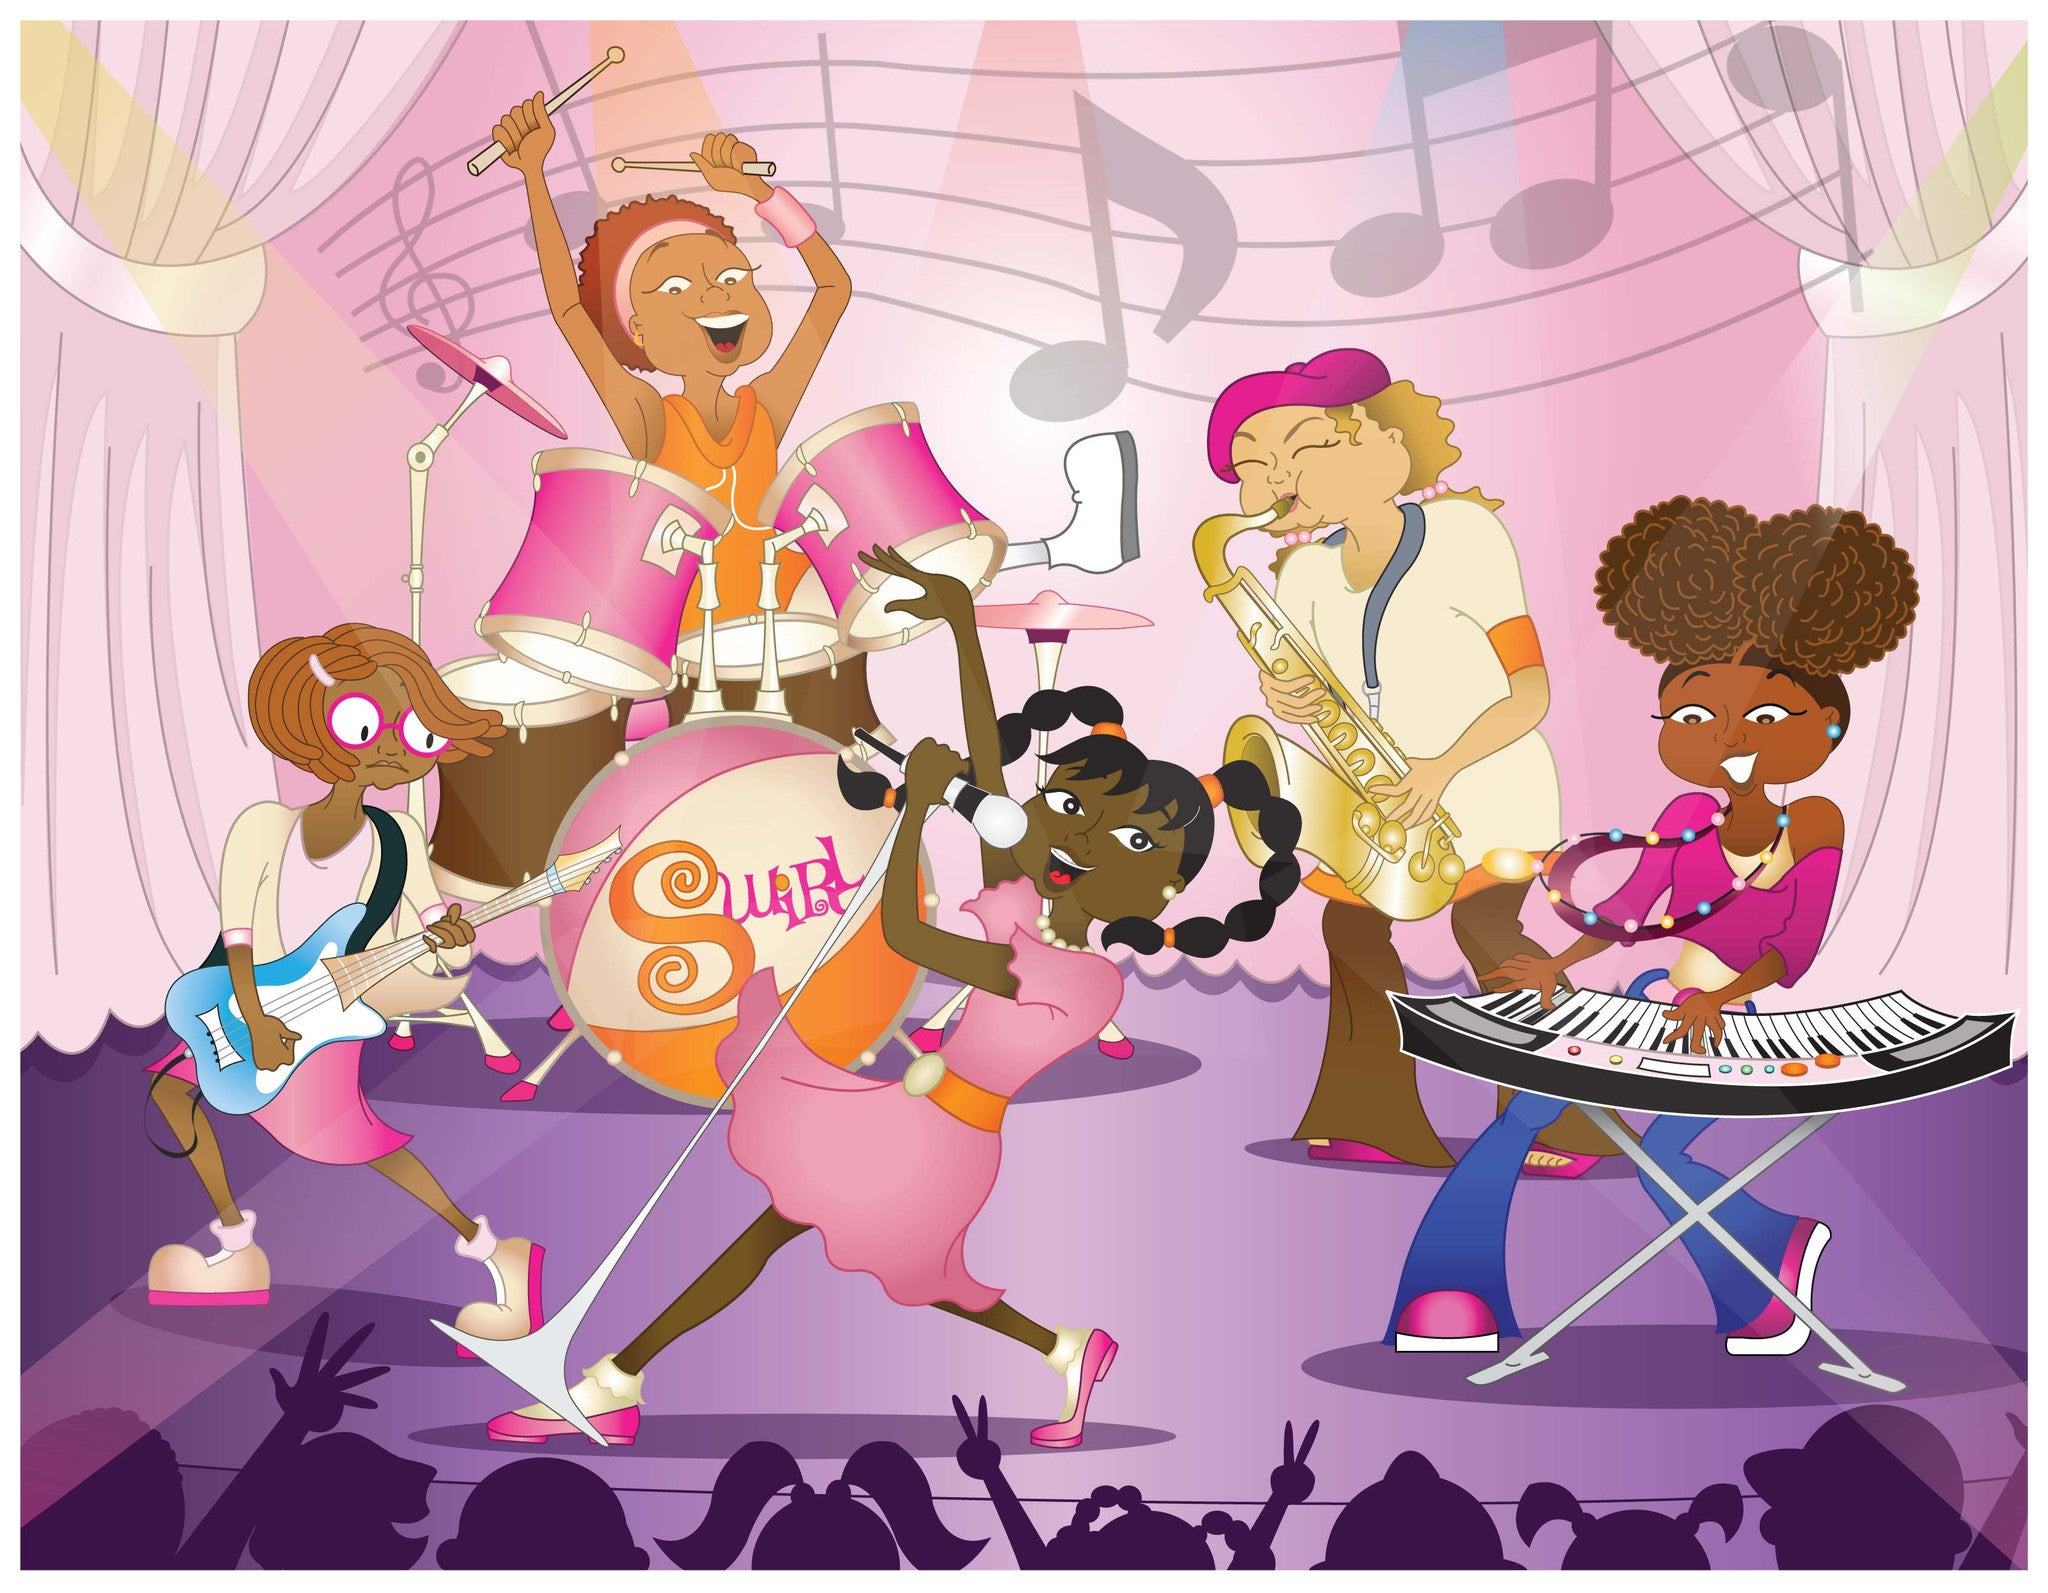 Character Poster | SWIRL, the band featuring the Chocolate Cupcake characters!